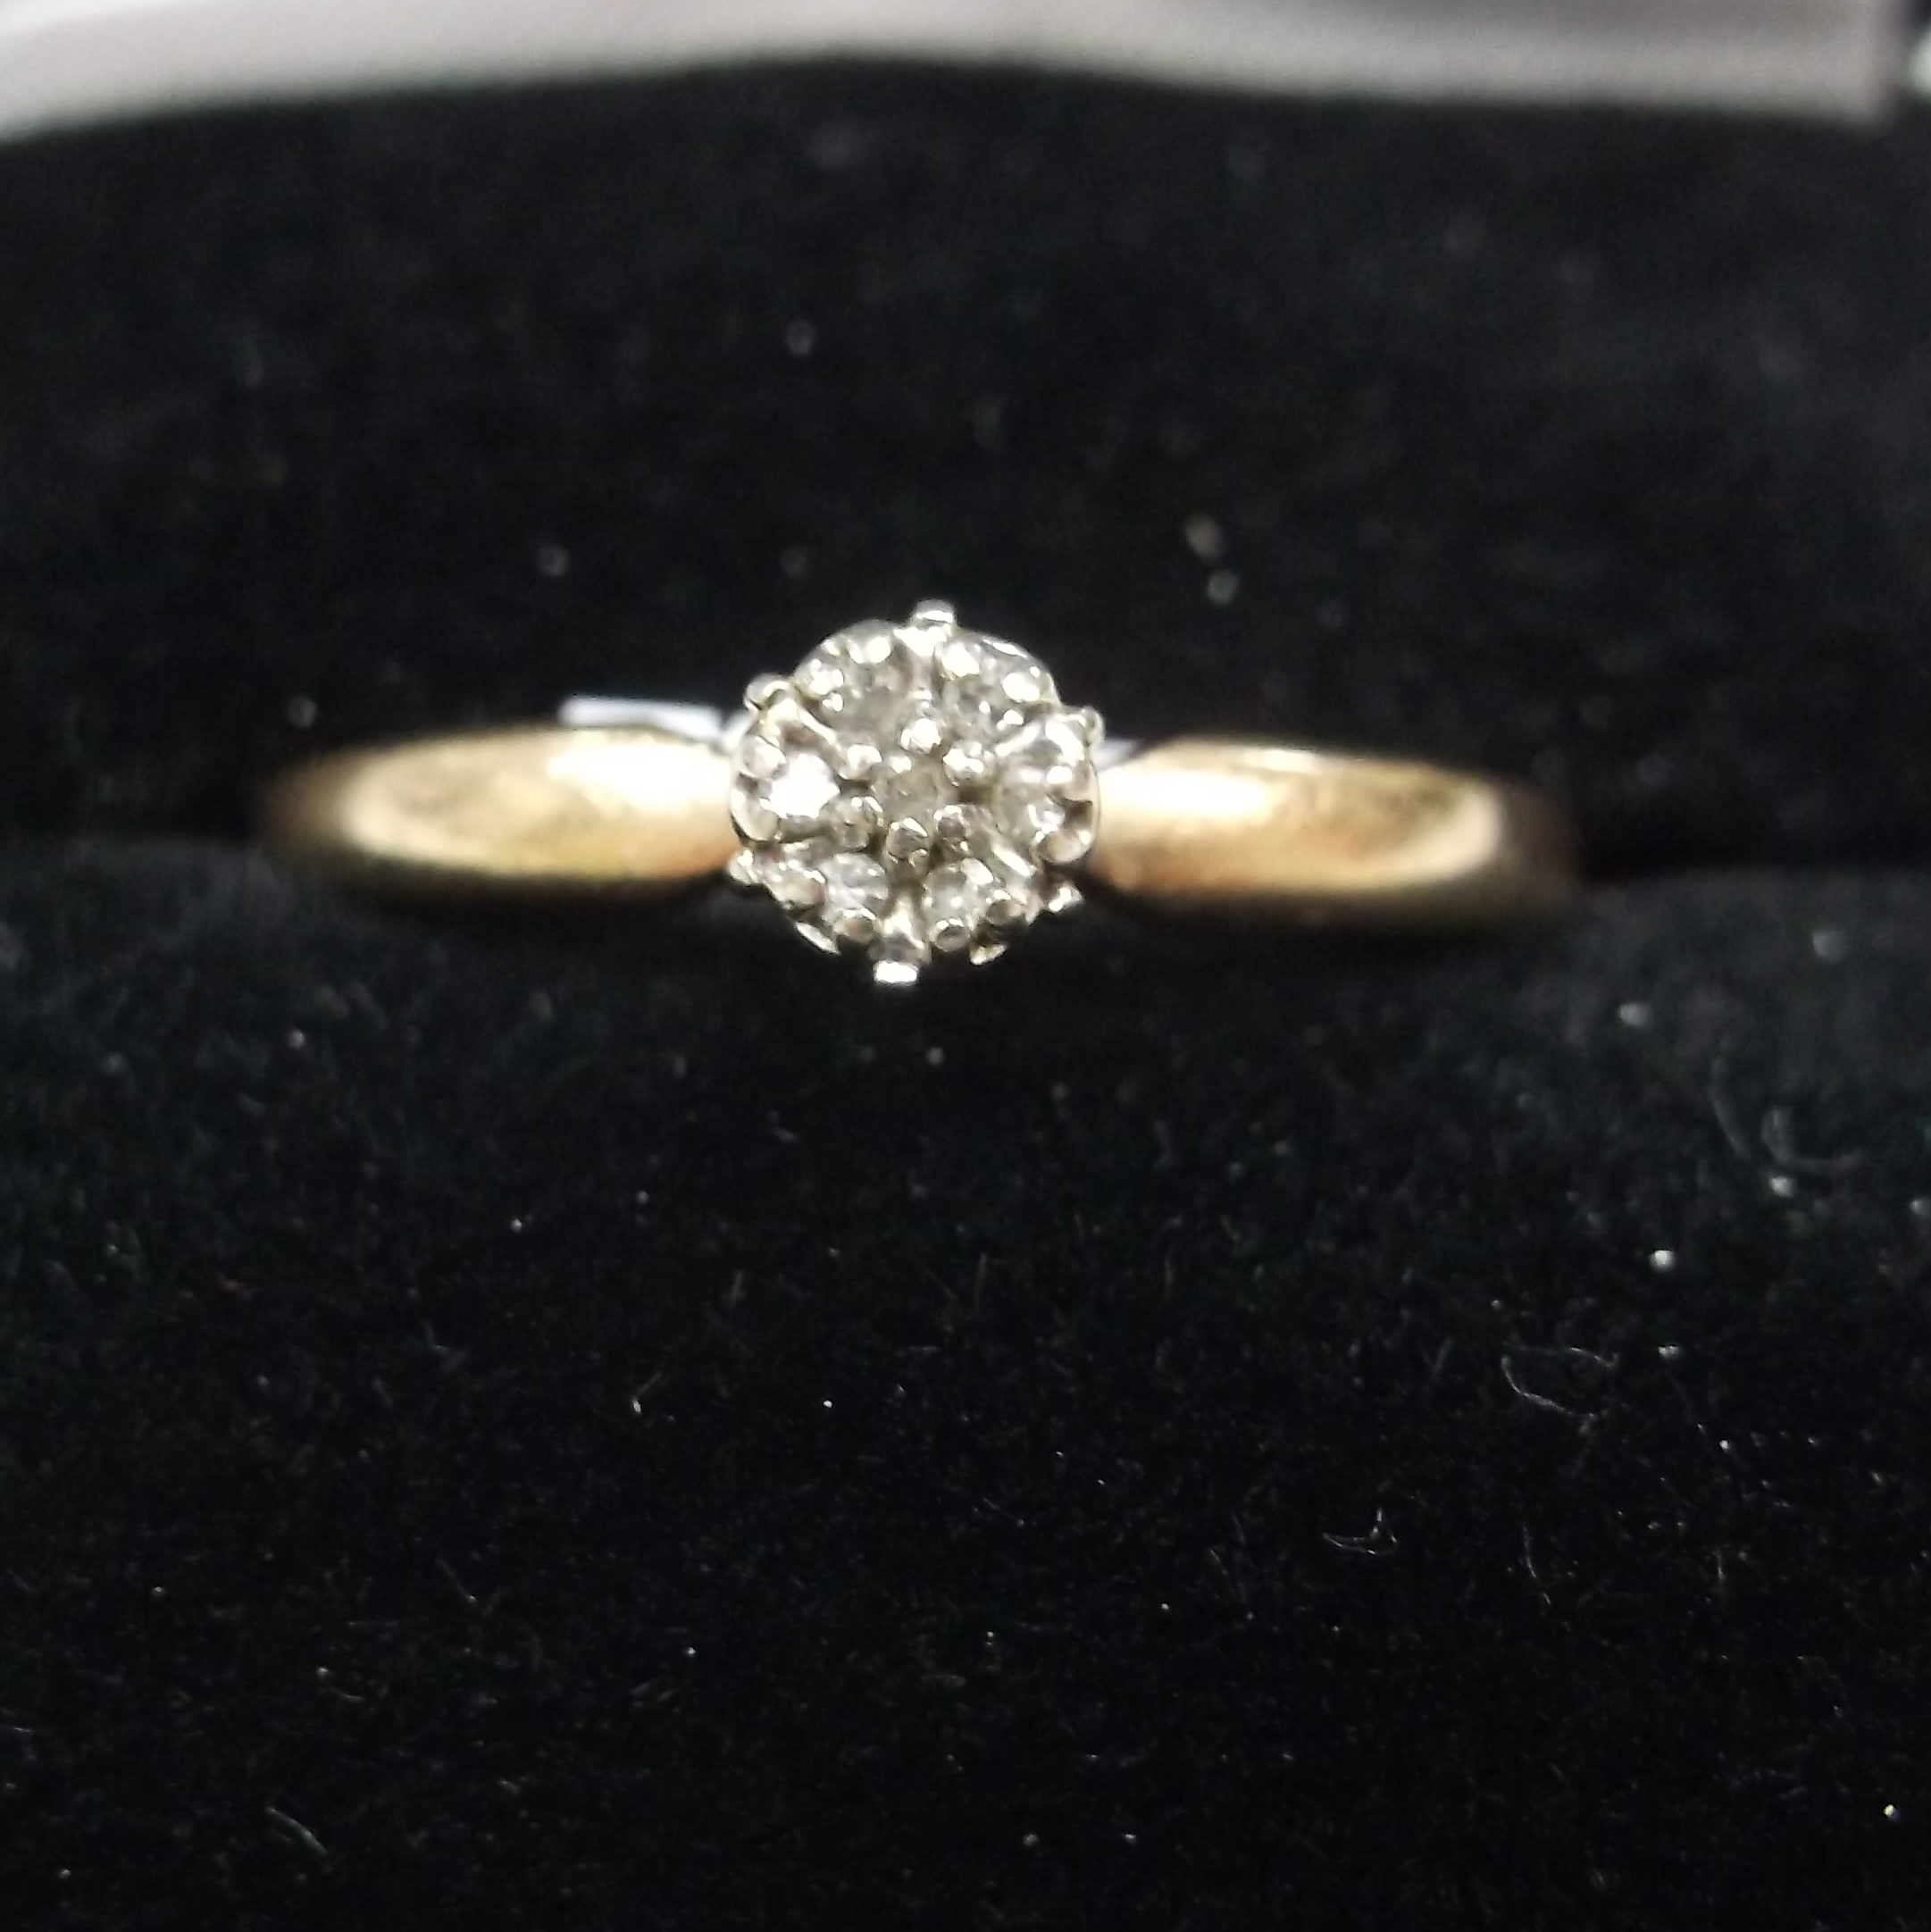 10 KT YELLOW GOLD ENGAGEMENT RING